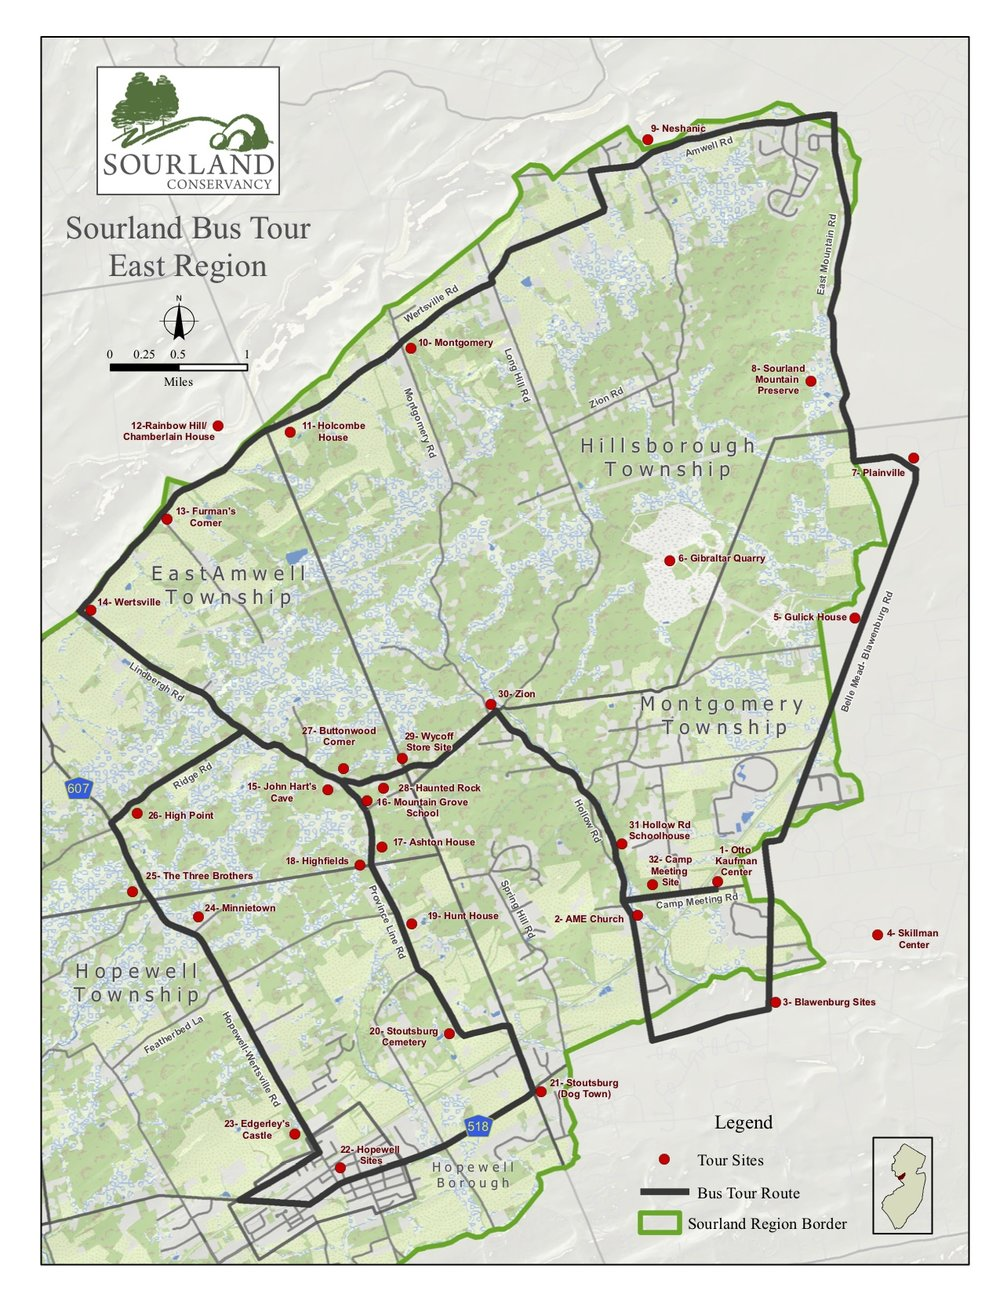 Sourland Conservancy's Eastern bus tour map